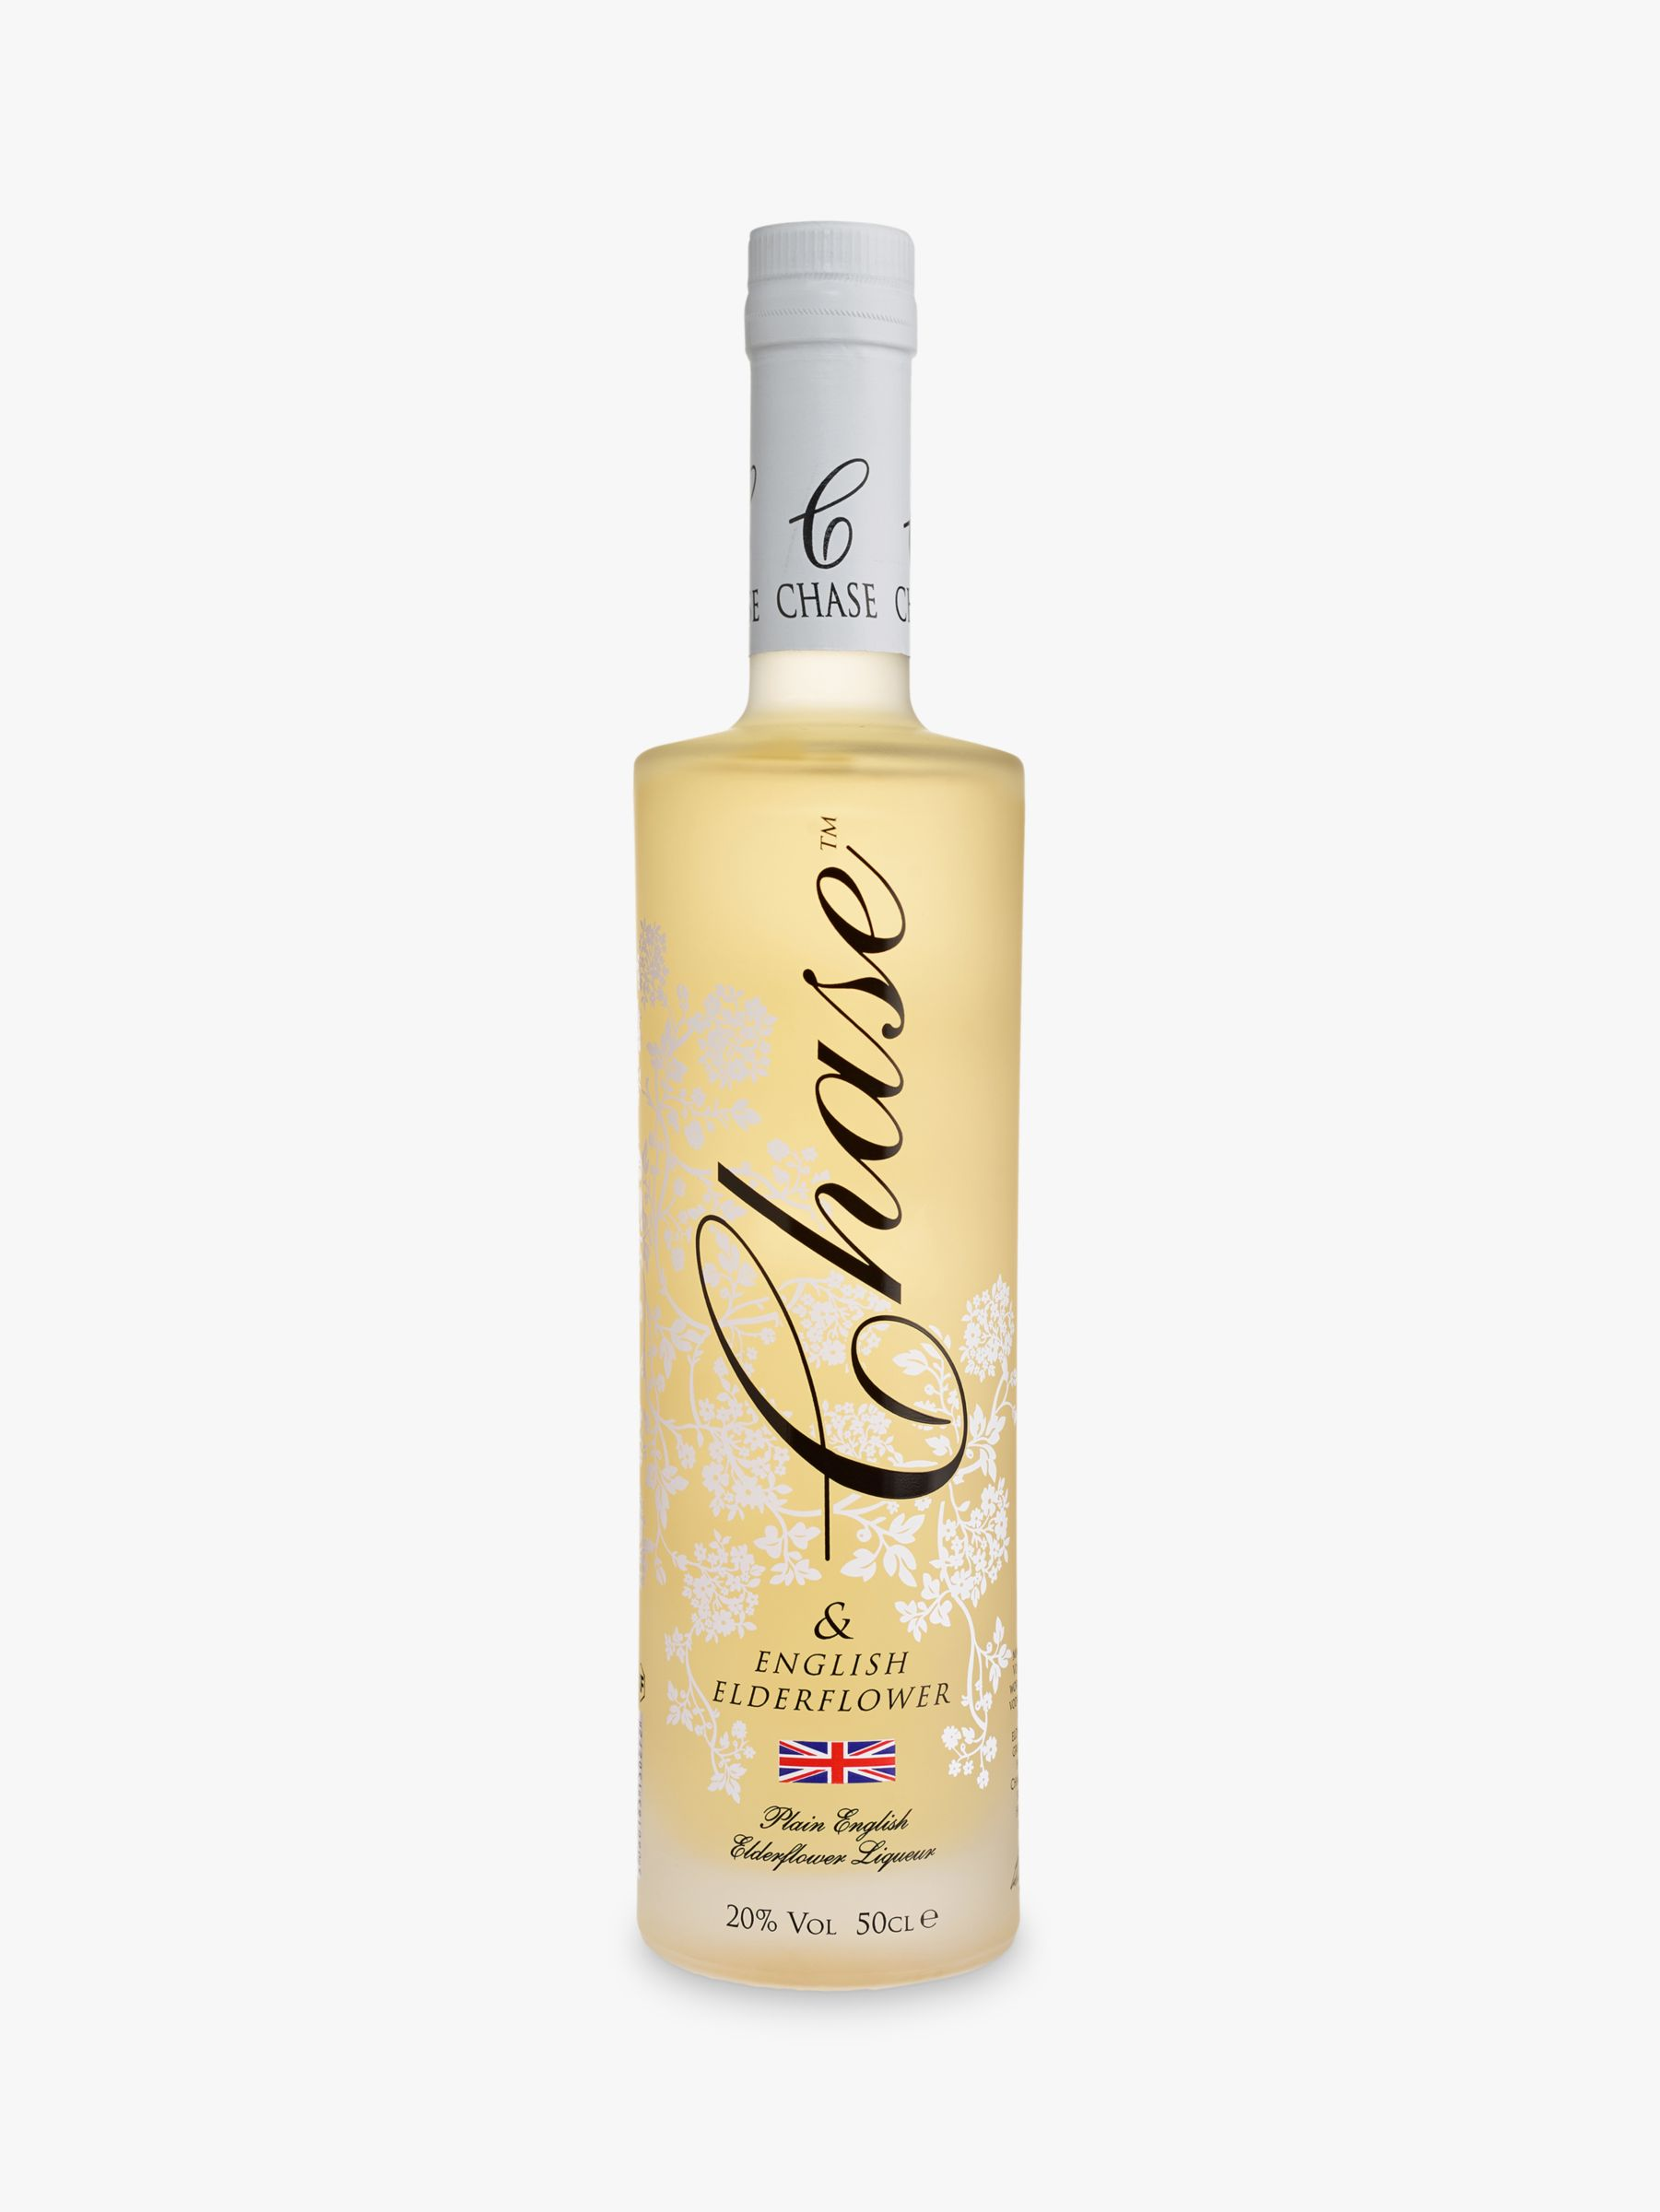 Chase Chase Elderflower Liqueur, 50cl